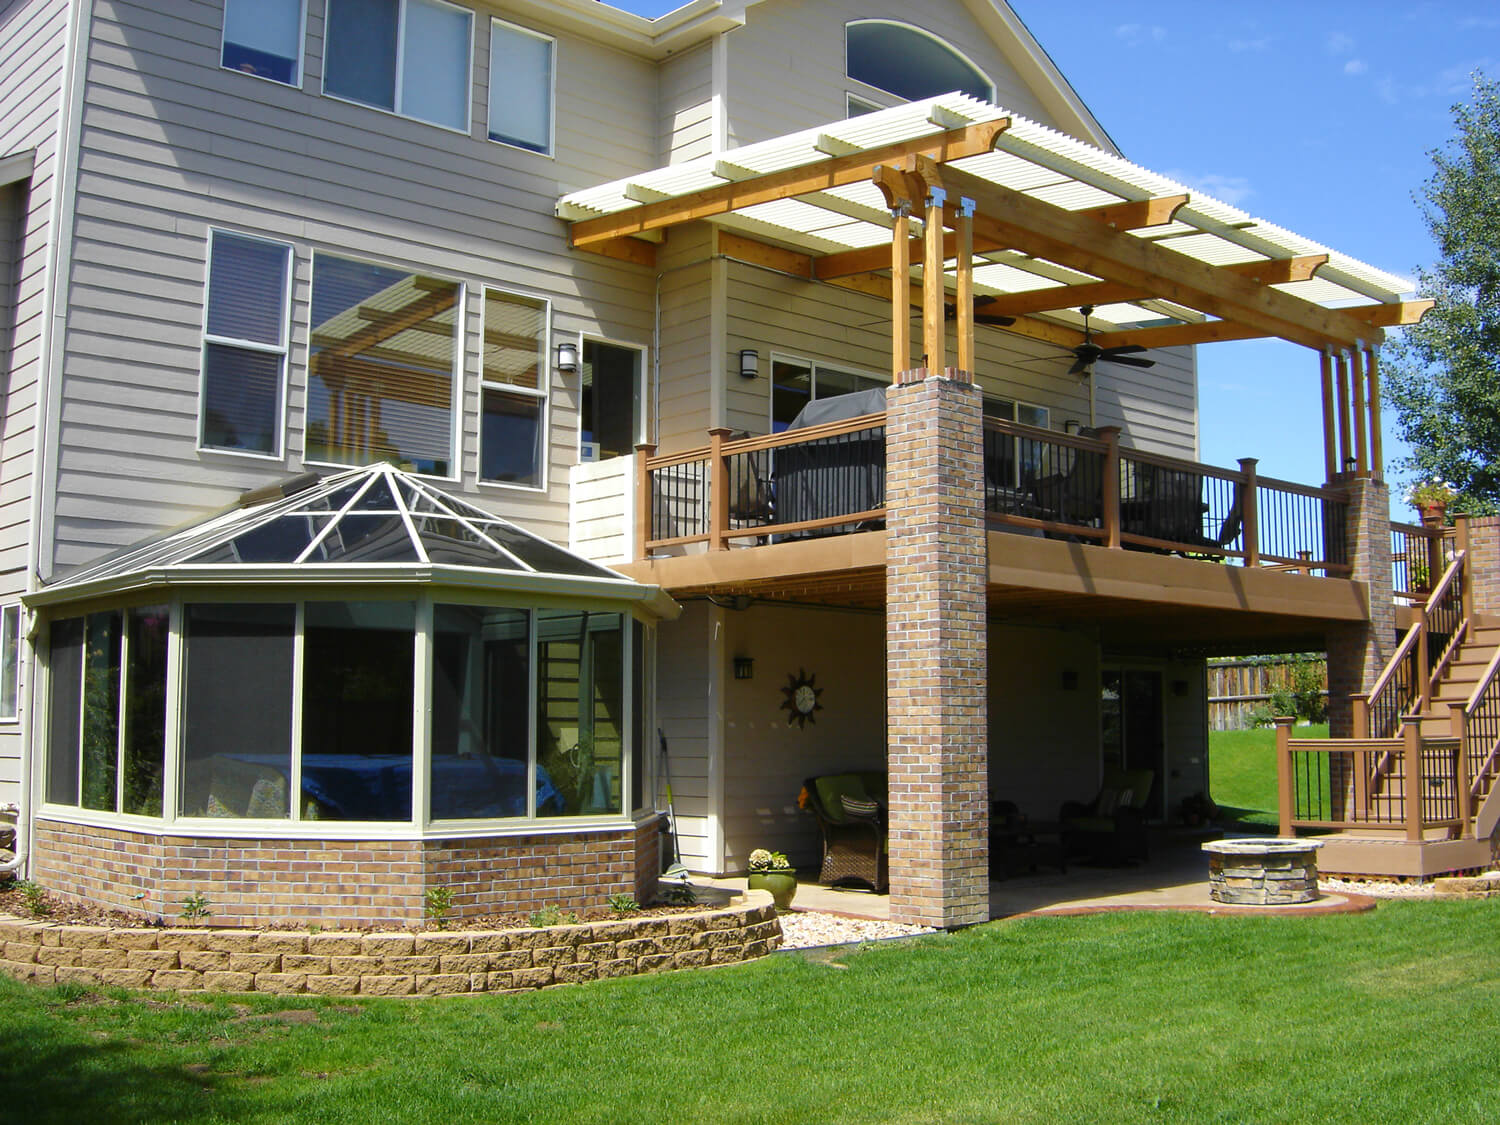 Building from the ground up, Four Seasons Sunrooms can be made in various shapes, sizes and custom colors. -